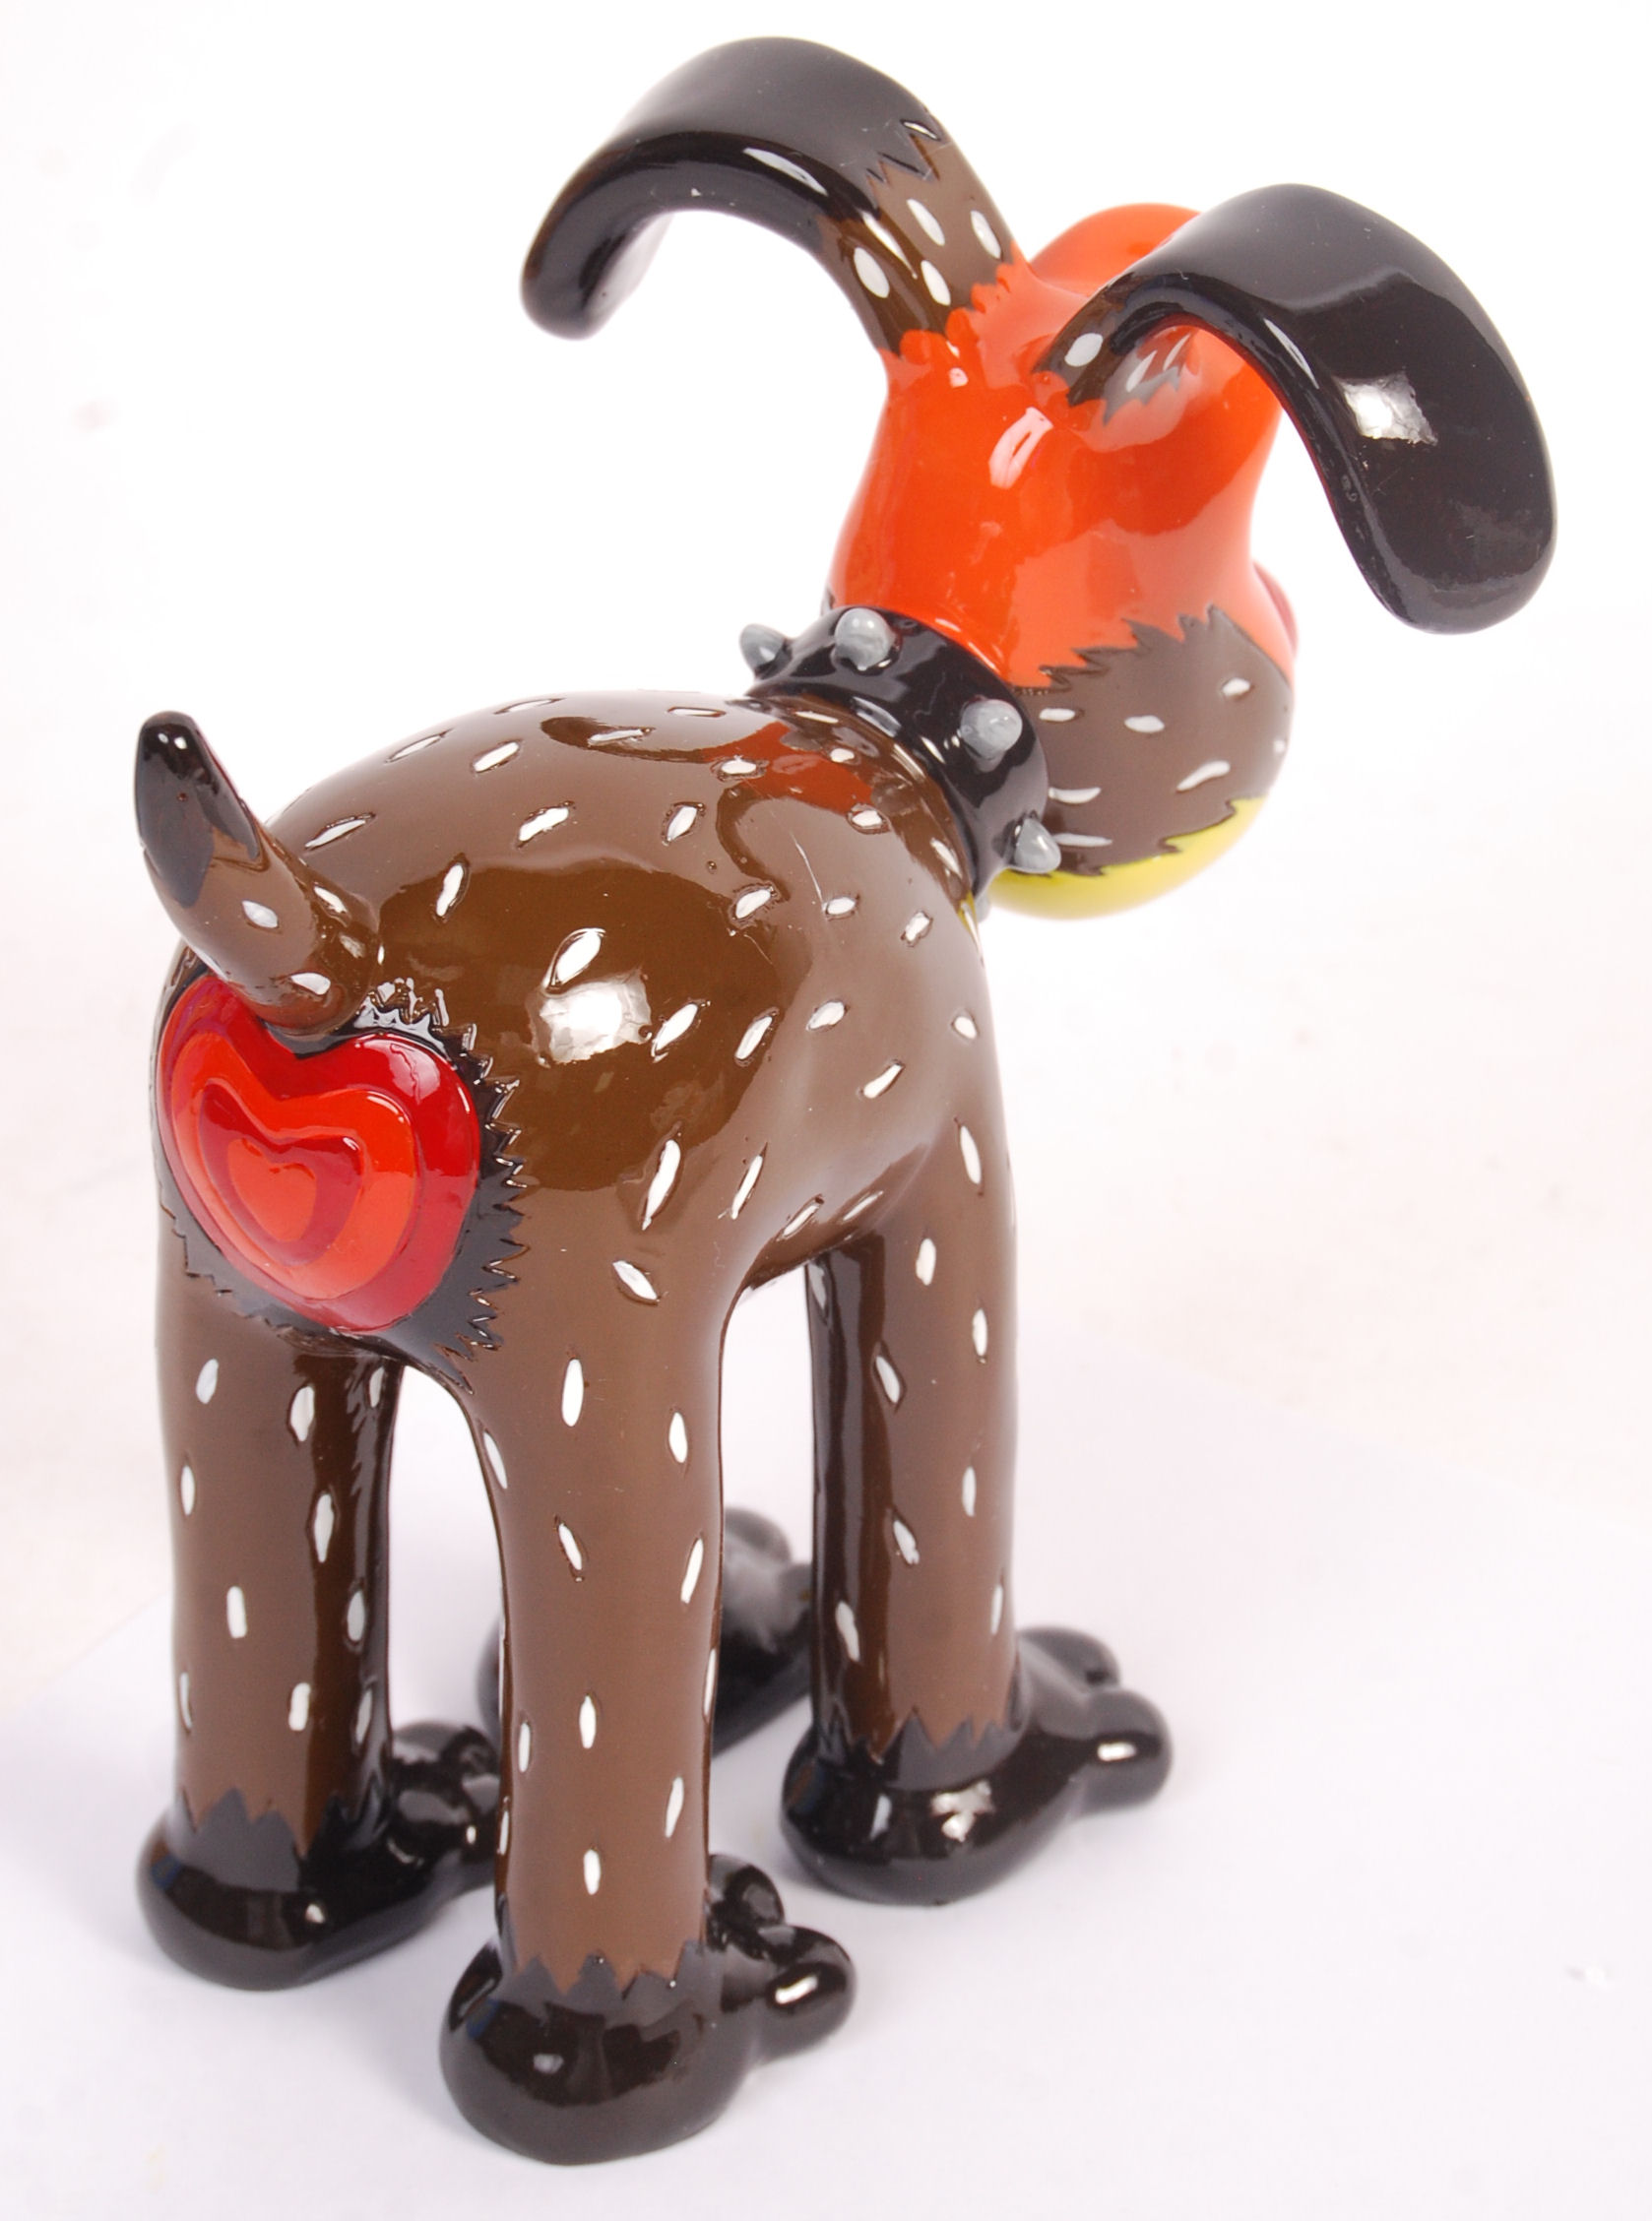 GROMIT UNLEASHED COLLECTABLE FIGURINE ' MANDRILLE' - Image 3 of 5